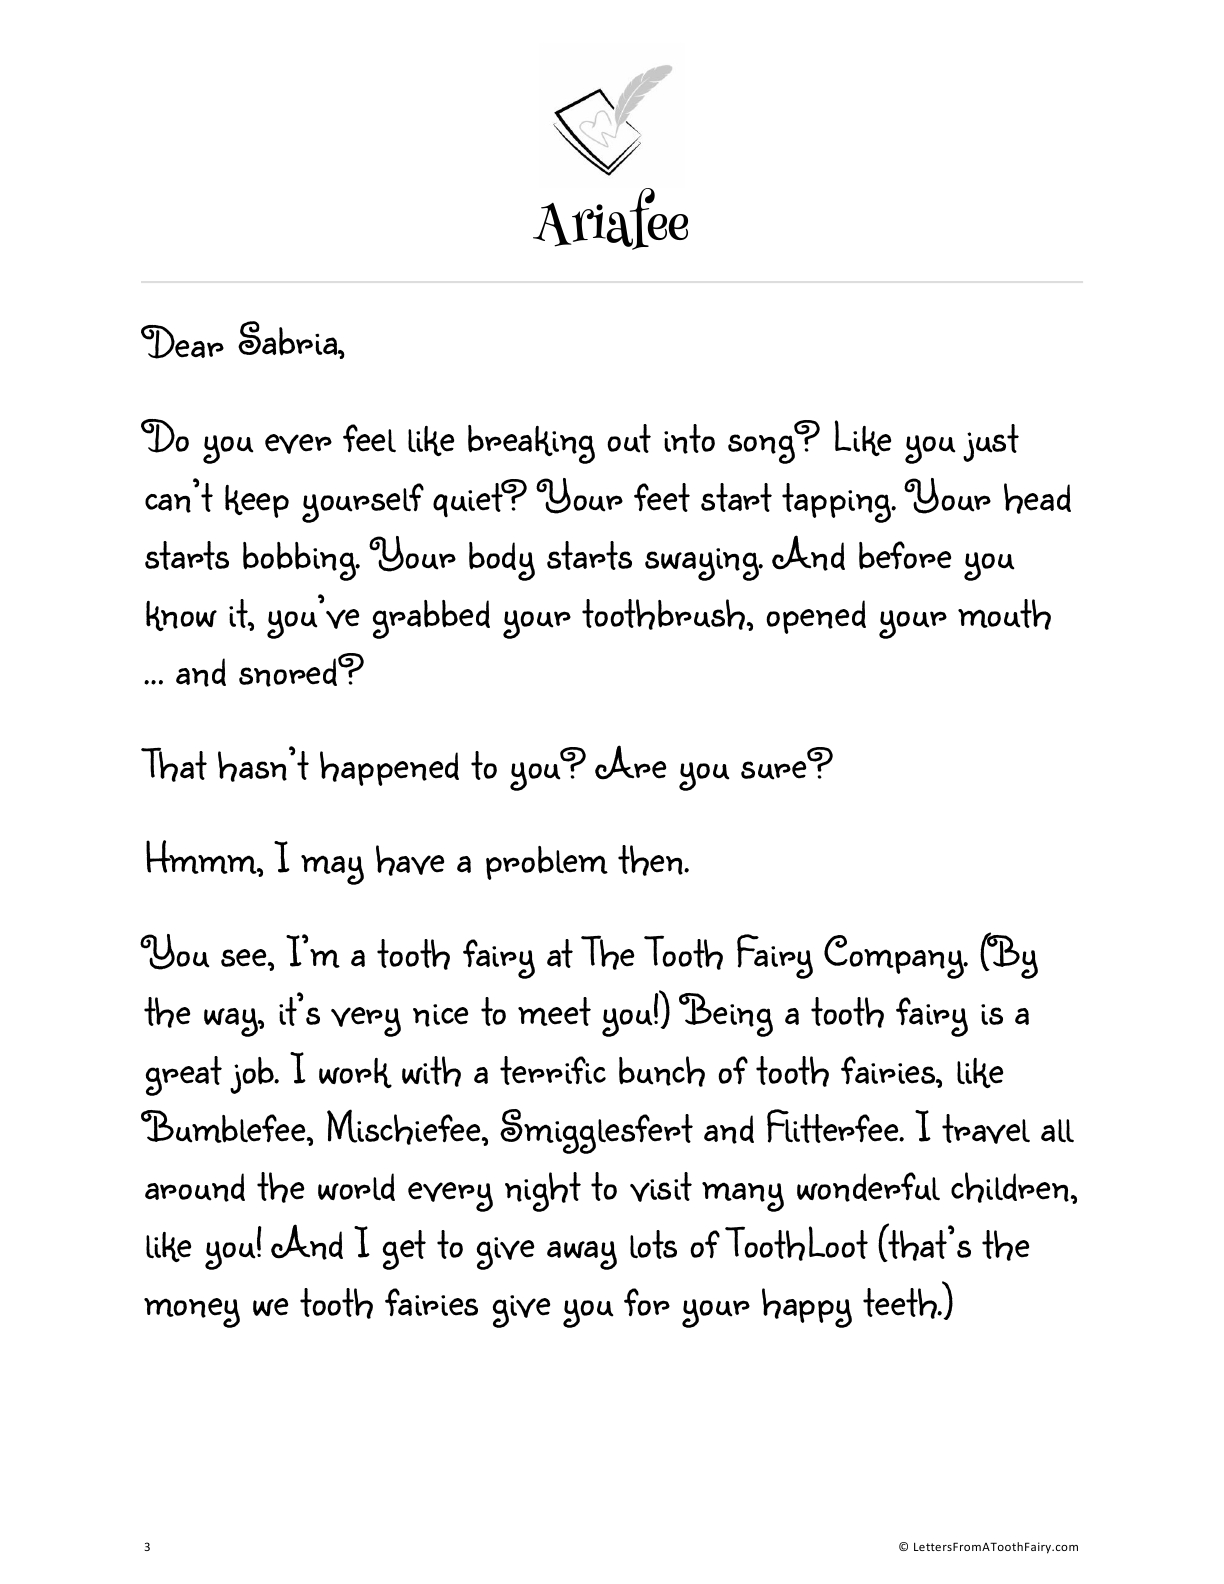 Free tooth fairy letter from the singing tooth fairy Ariafee